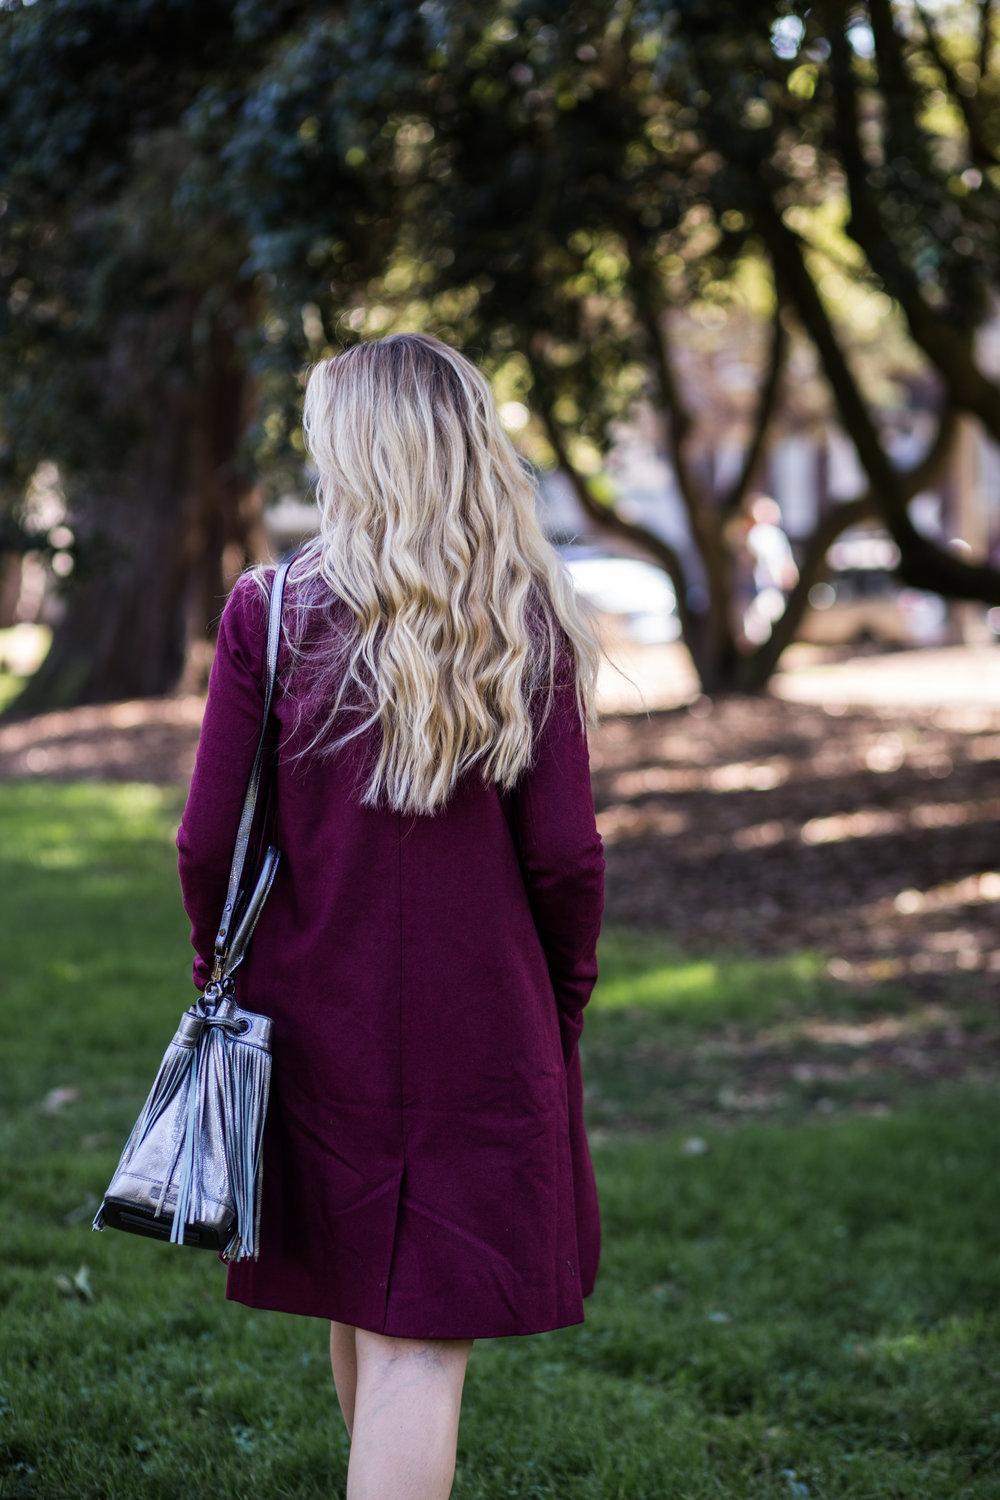 blonde wearing burgundy coat